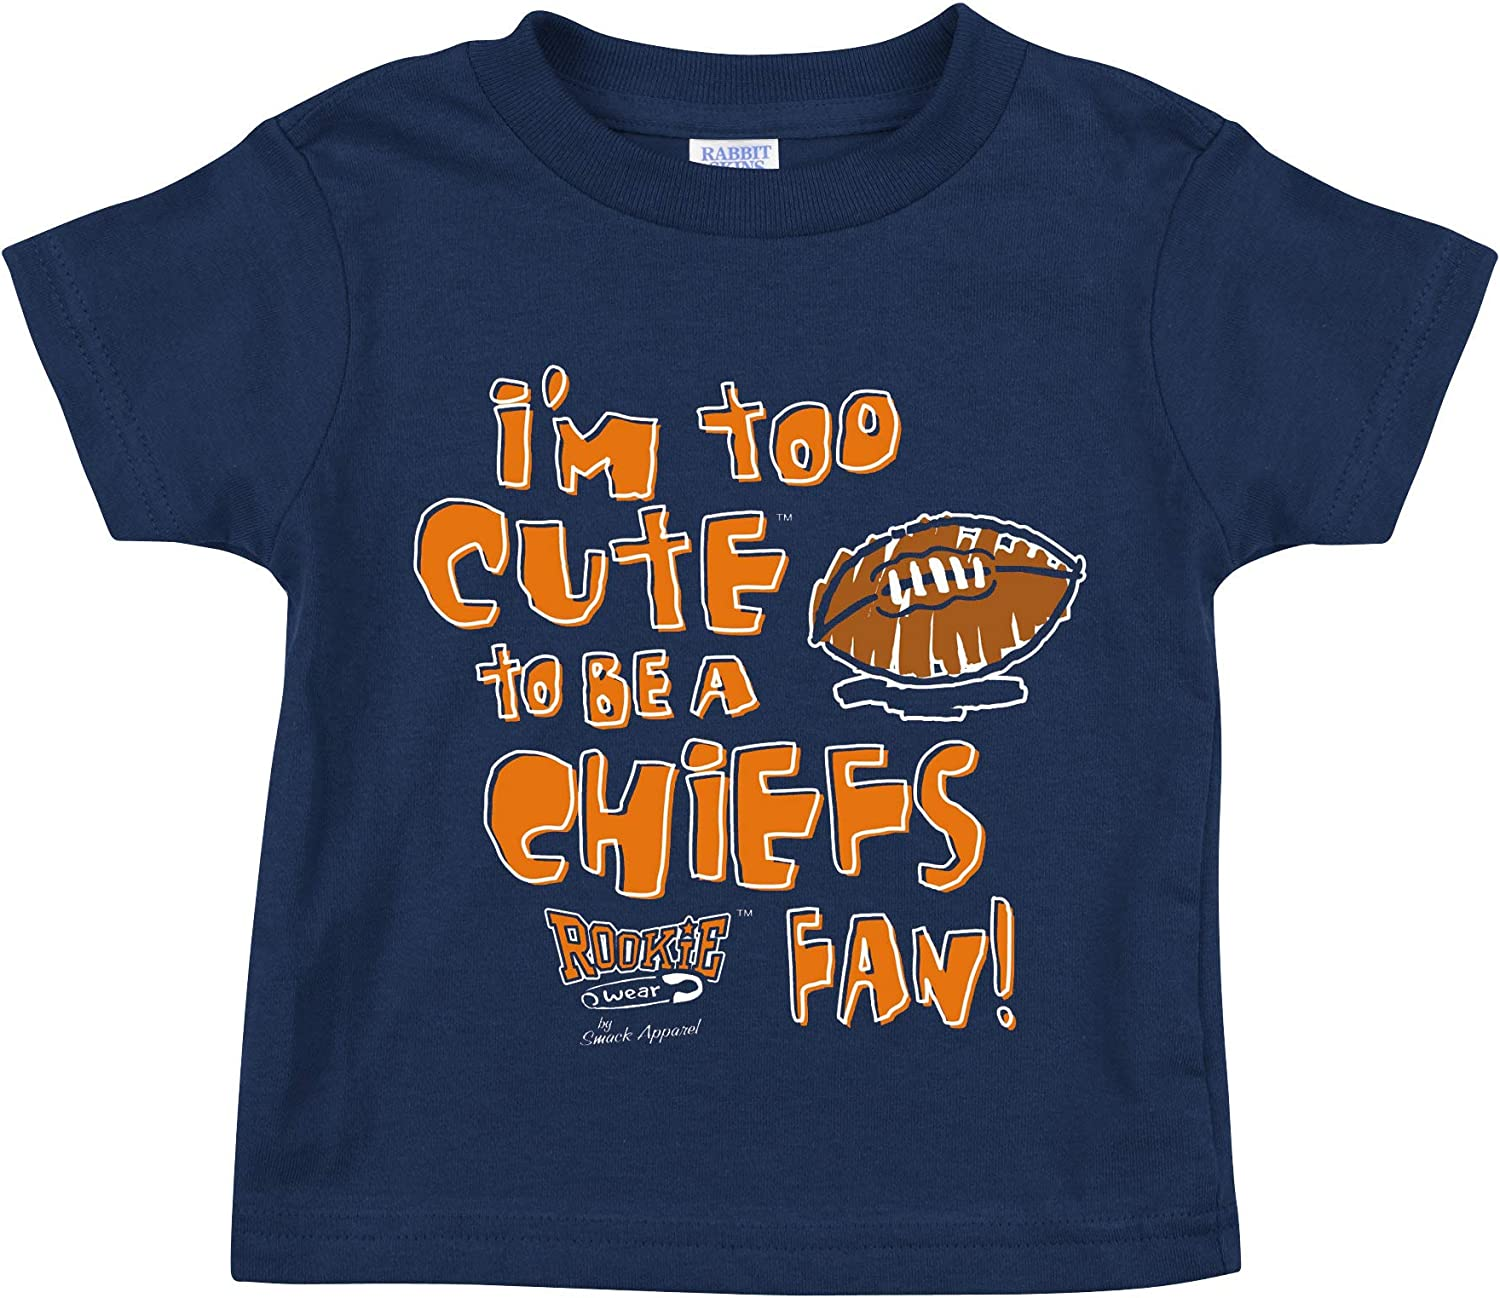 NB-4T Smack Apparel Denver Football Fans Navy Onesie or Toddler Tee Im Too Cute to be a Chiefs Fan